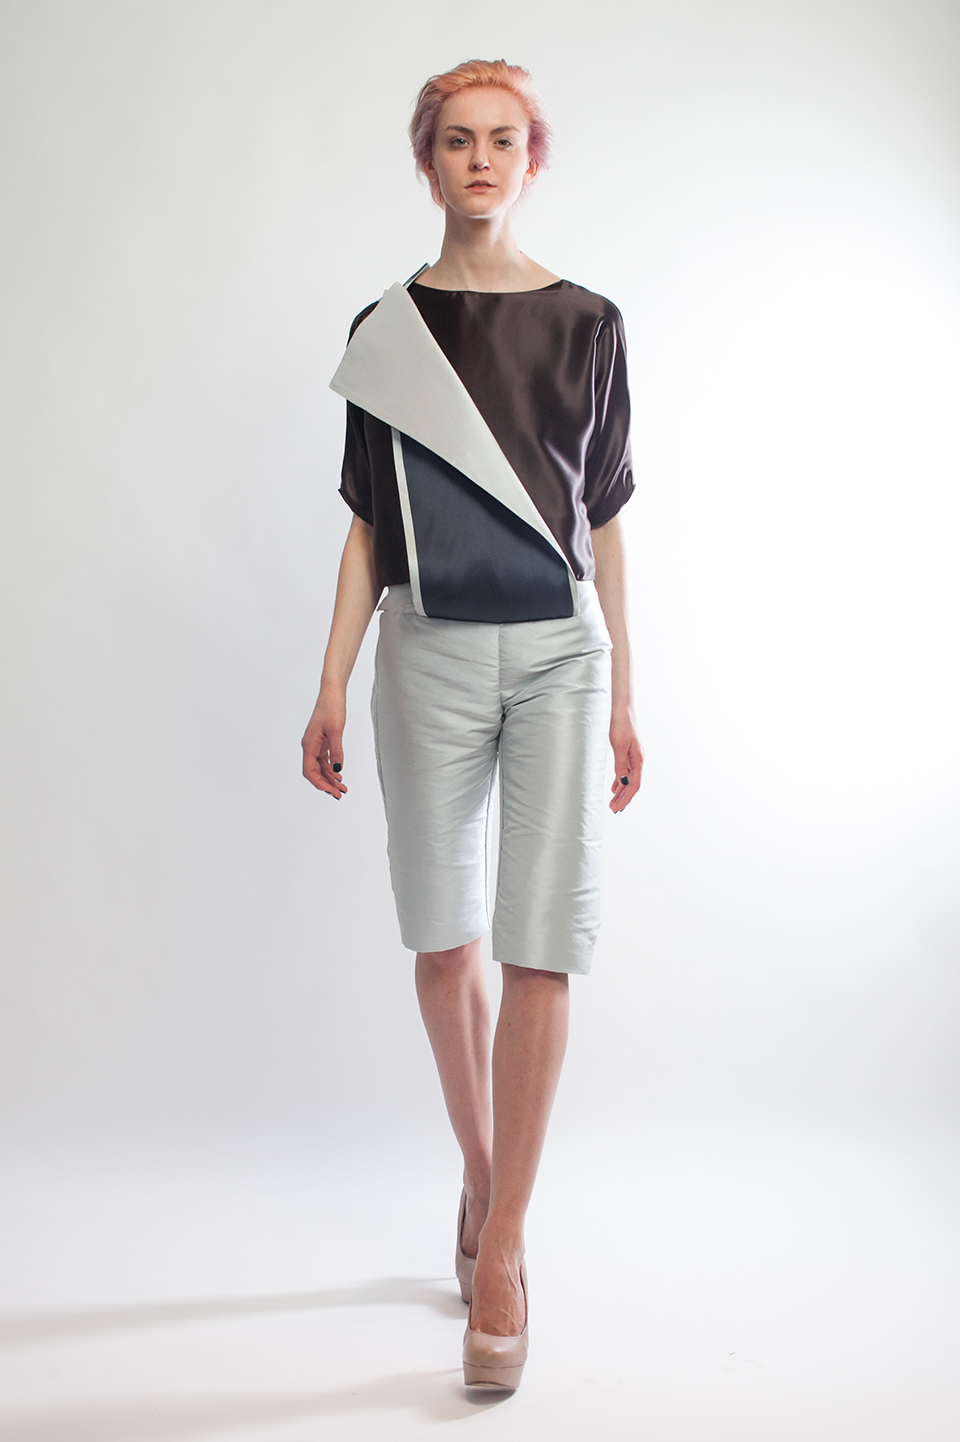 Claire Andrew Designer Fashion AW14 2  - Ice blue cropped trouser with silk chocolate 3/4 sleeve top